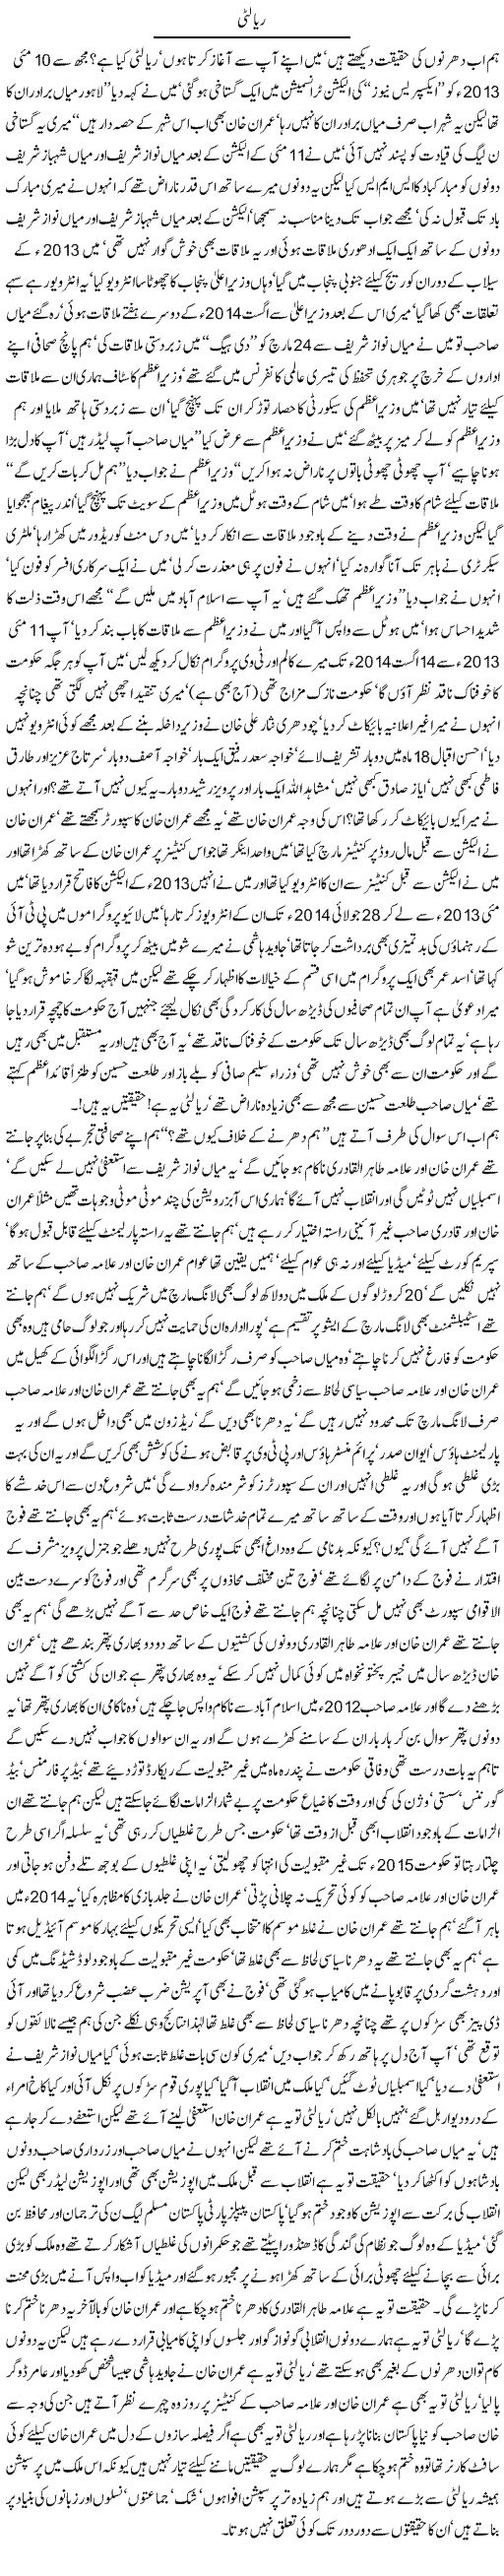 Reality by Javed Chaudhry